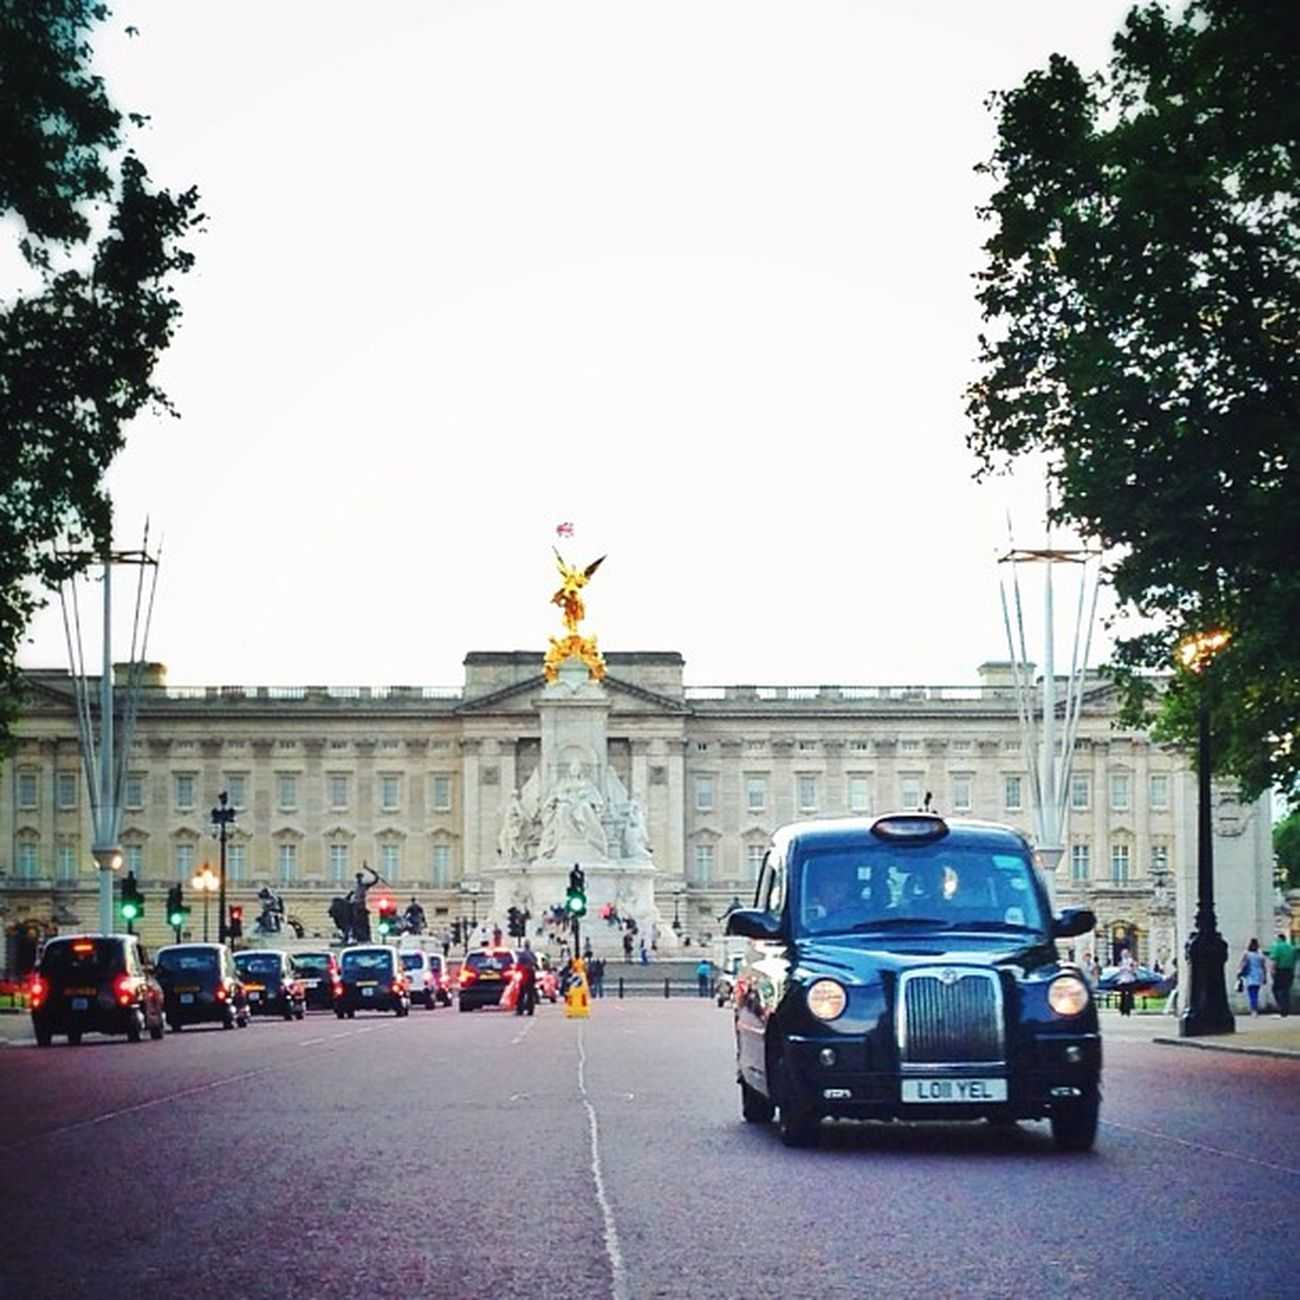 Black cabs and #buckingham palace ????? #cab #pallmall Igers_london Ig_england Love_london Ic_cities_london Ig_london Cab Aauk Gang_family Capture_today Londonpop Loveyoursummer Buckingham Mashpics Allshots_ Top_masters London_only From_city Gf_uk Pro_shooters Alan_in_london Insta_london Pallmall Thisislondon Gi_uk